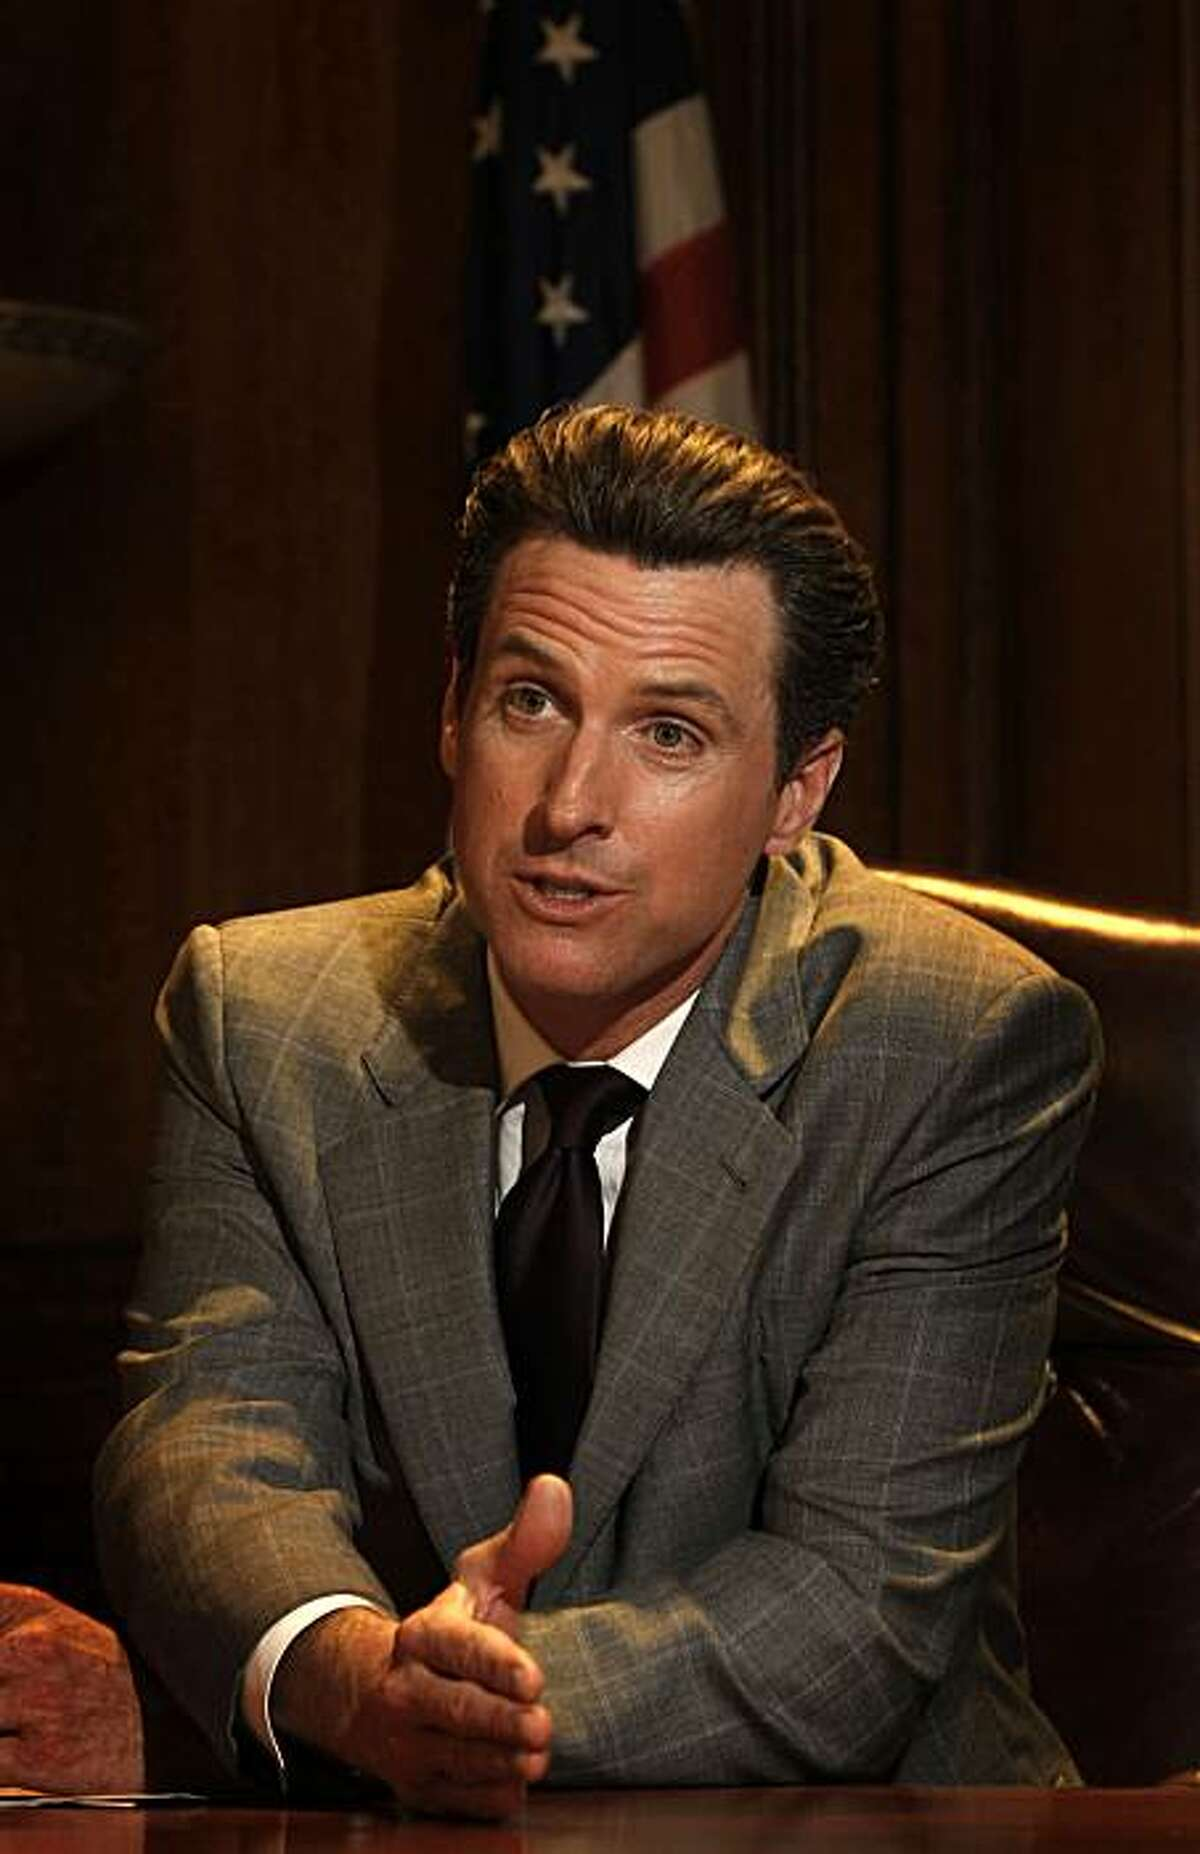 Mayor Gavin Newsom shares his thoughts on the decision by the California Supreme Court to uphold Proposition 8 which defines marriage between a man and a woman, in his City Hall office in San Francisco, Calif. on Tuesday May 26, 2009.